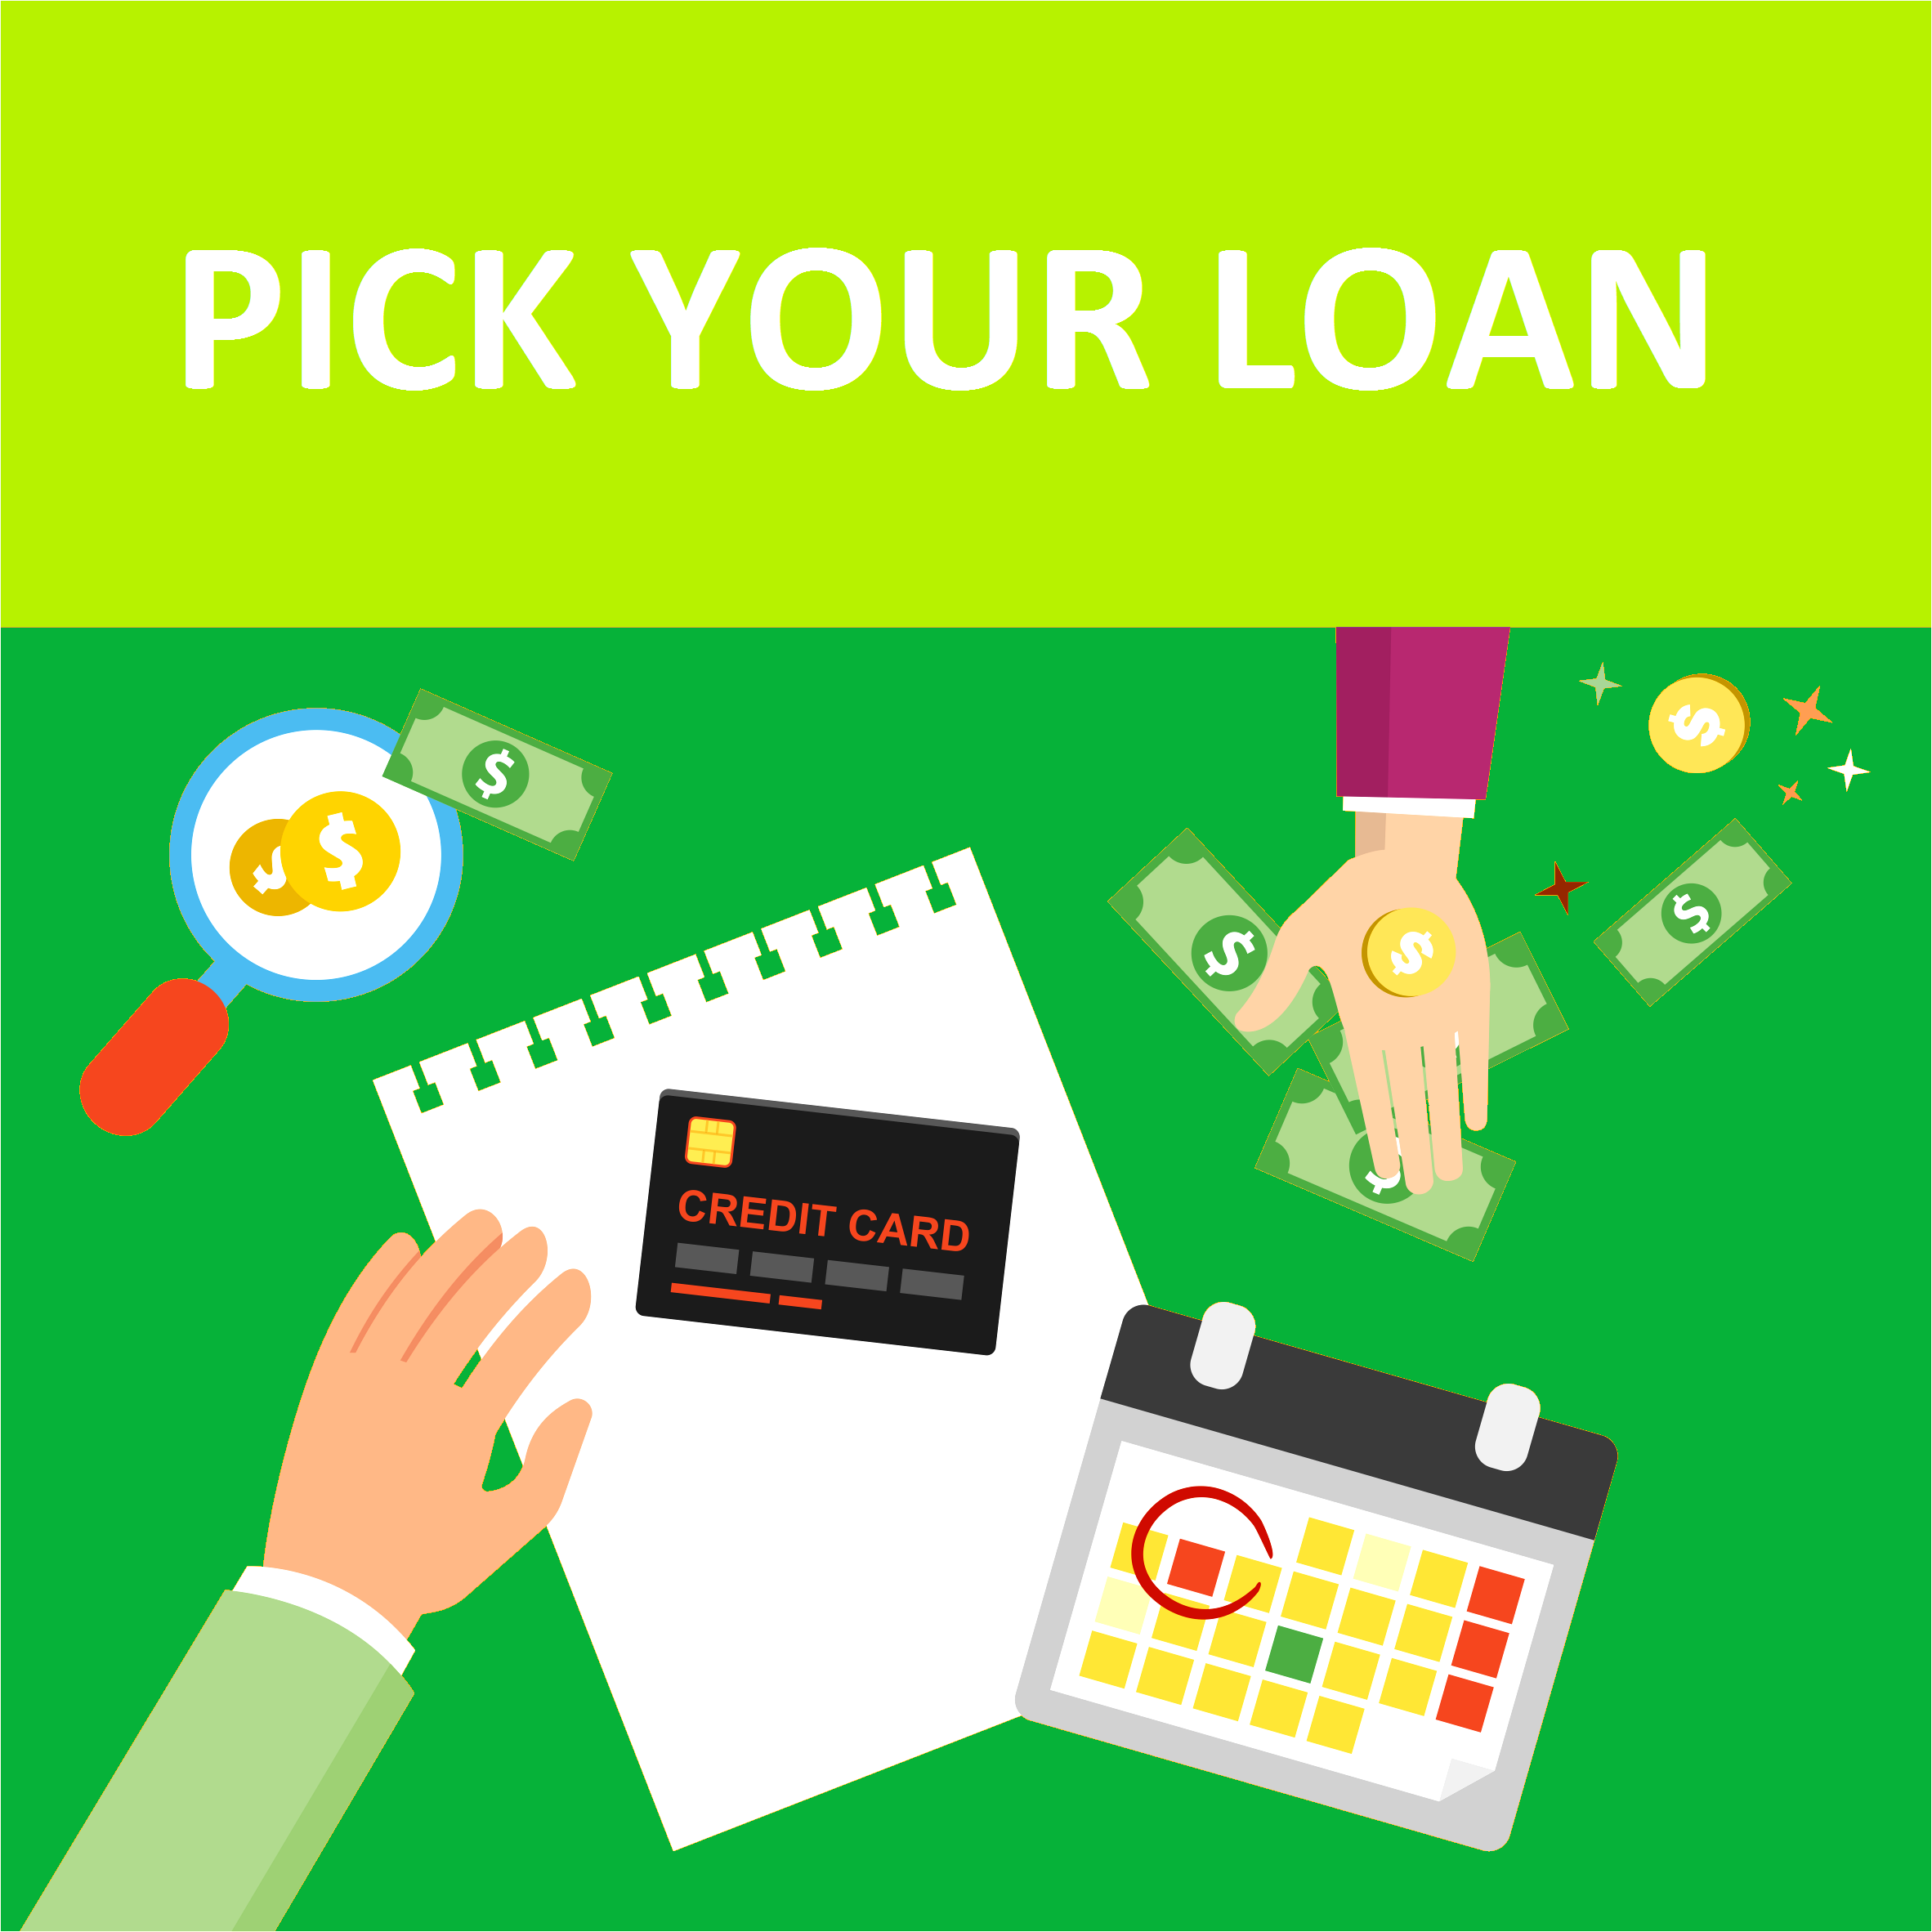 Pick Your Loan